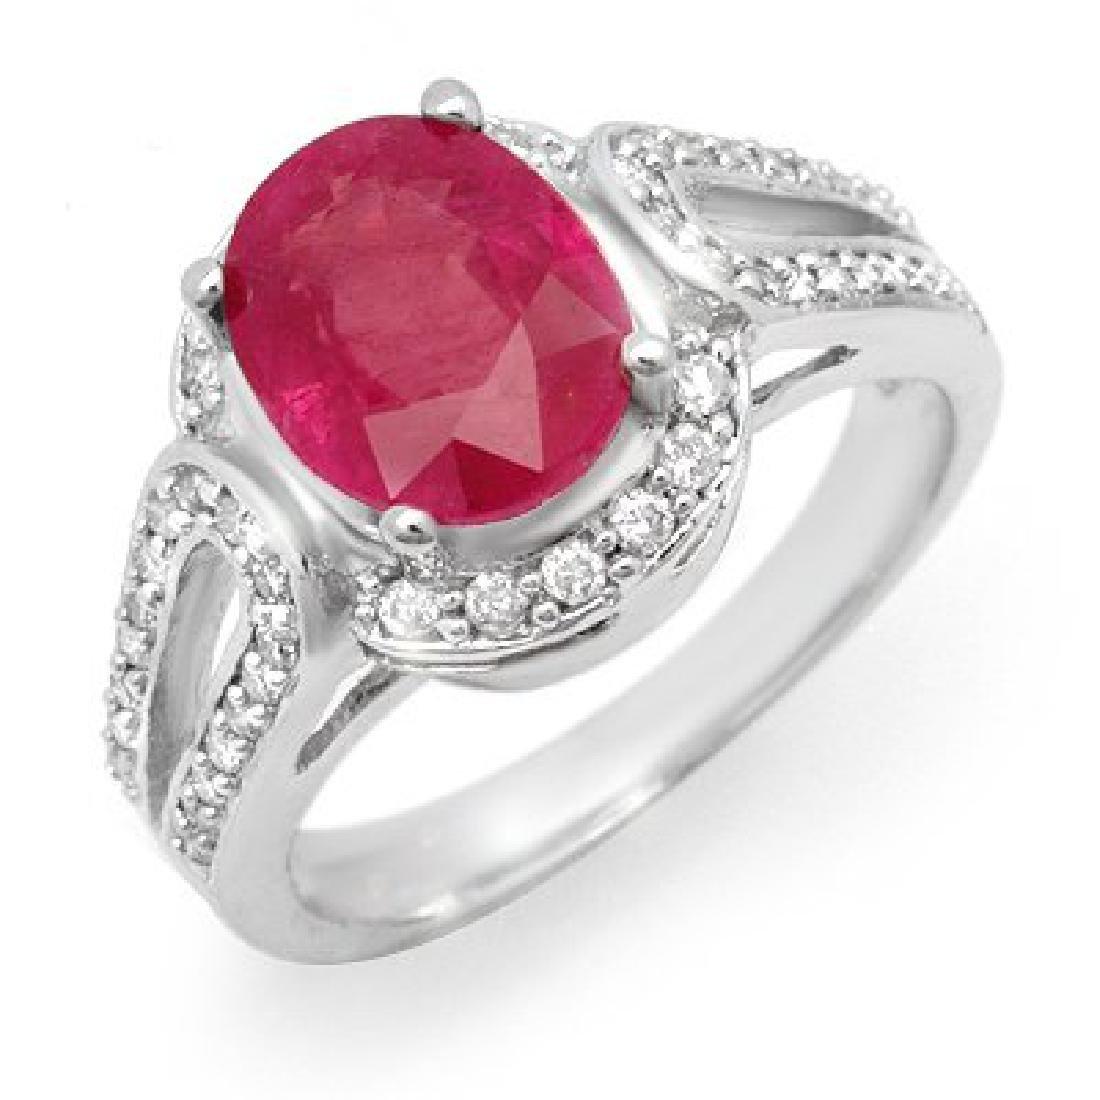 Genuine 4.5 Ctw Ruby & Diamond Ring 10K White Gold